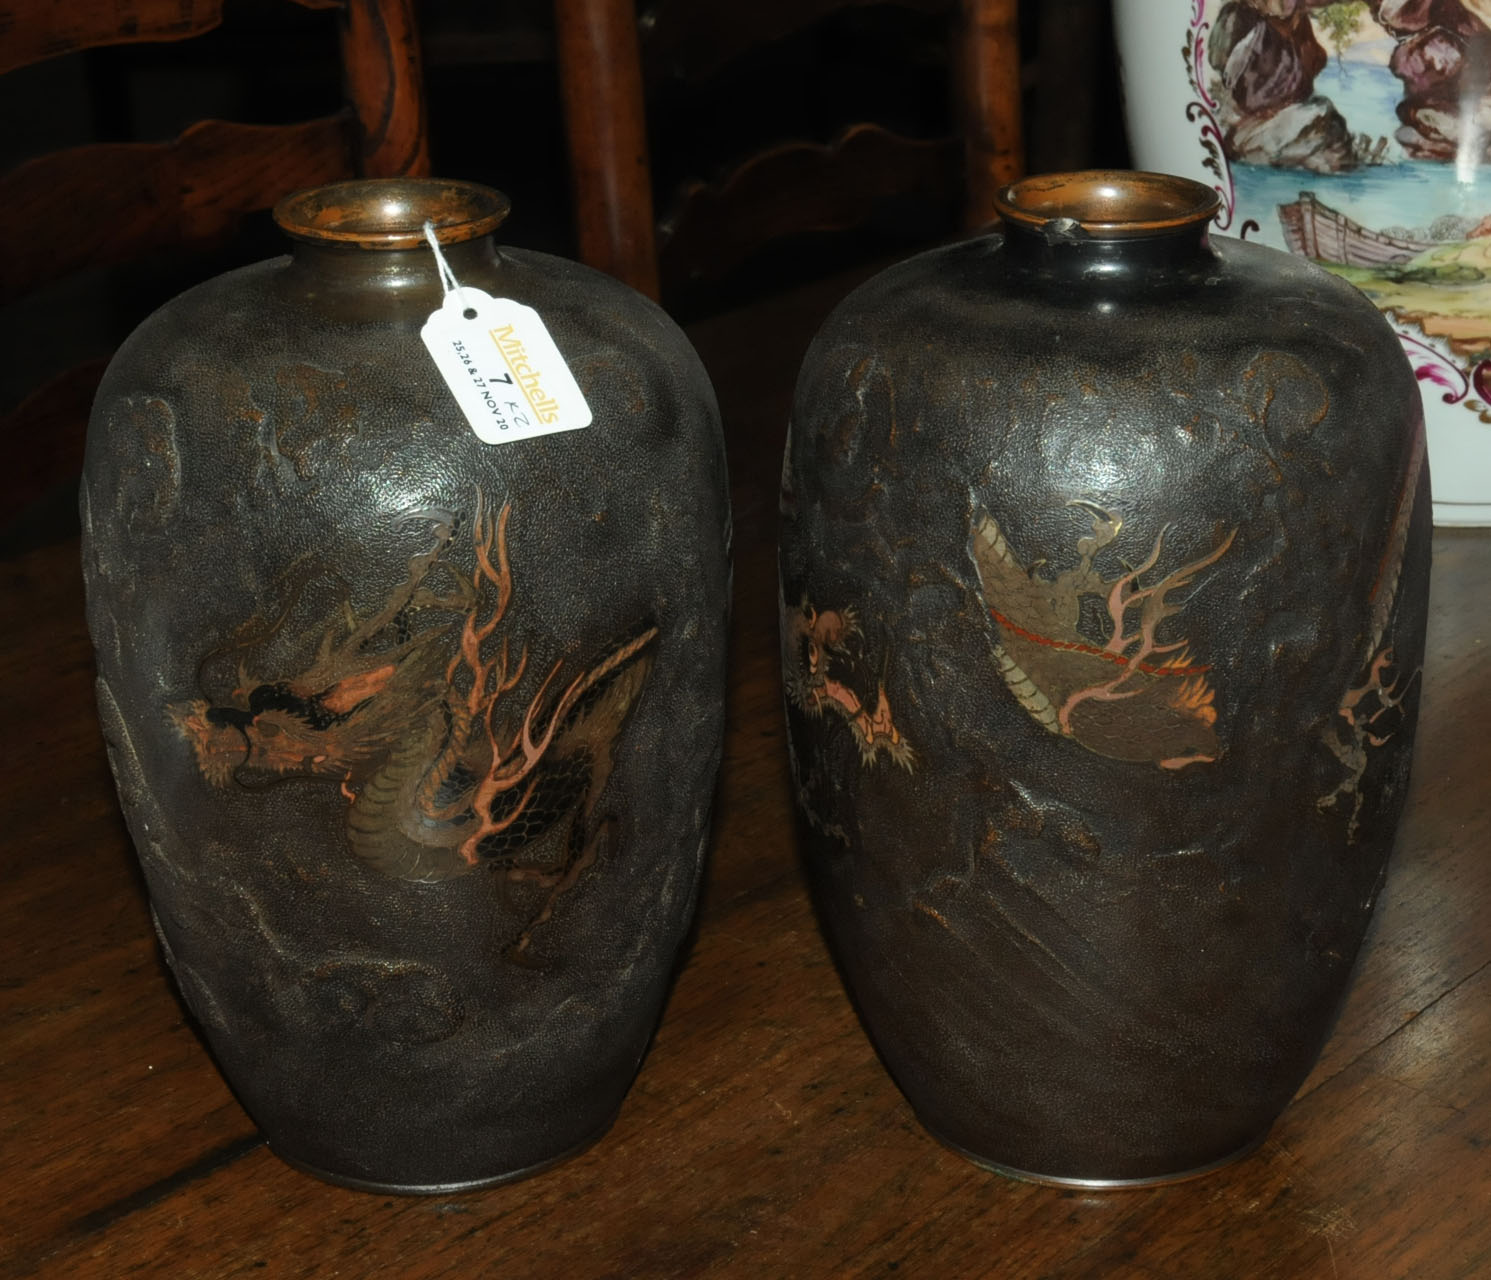 A pair of Japanese bronze vases, decorated with chasing dragons. Height 26 cm. - Image 2 of 11